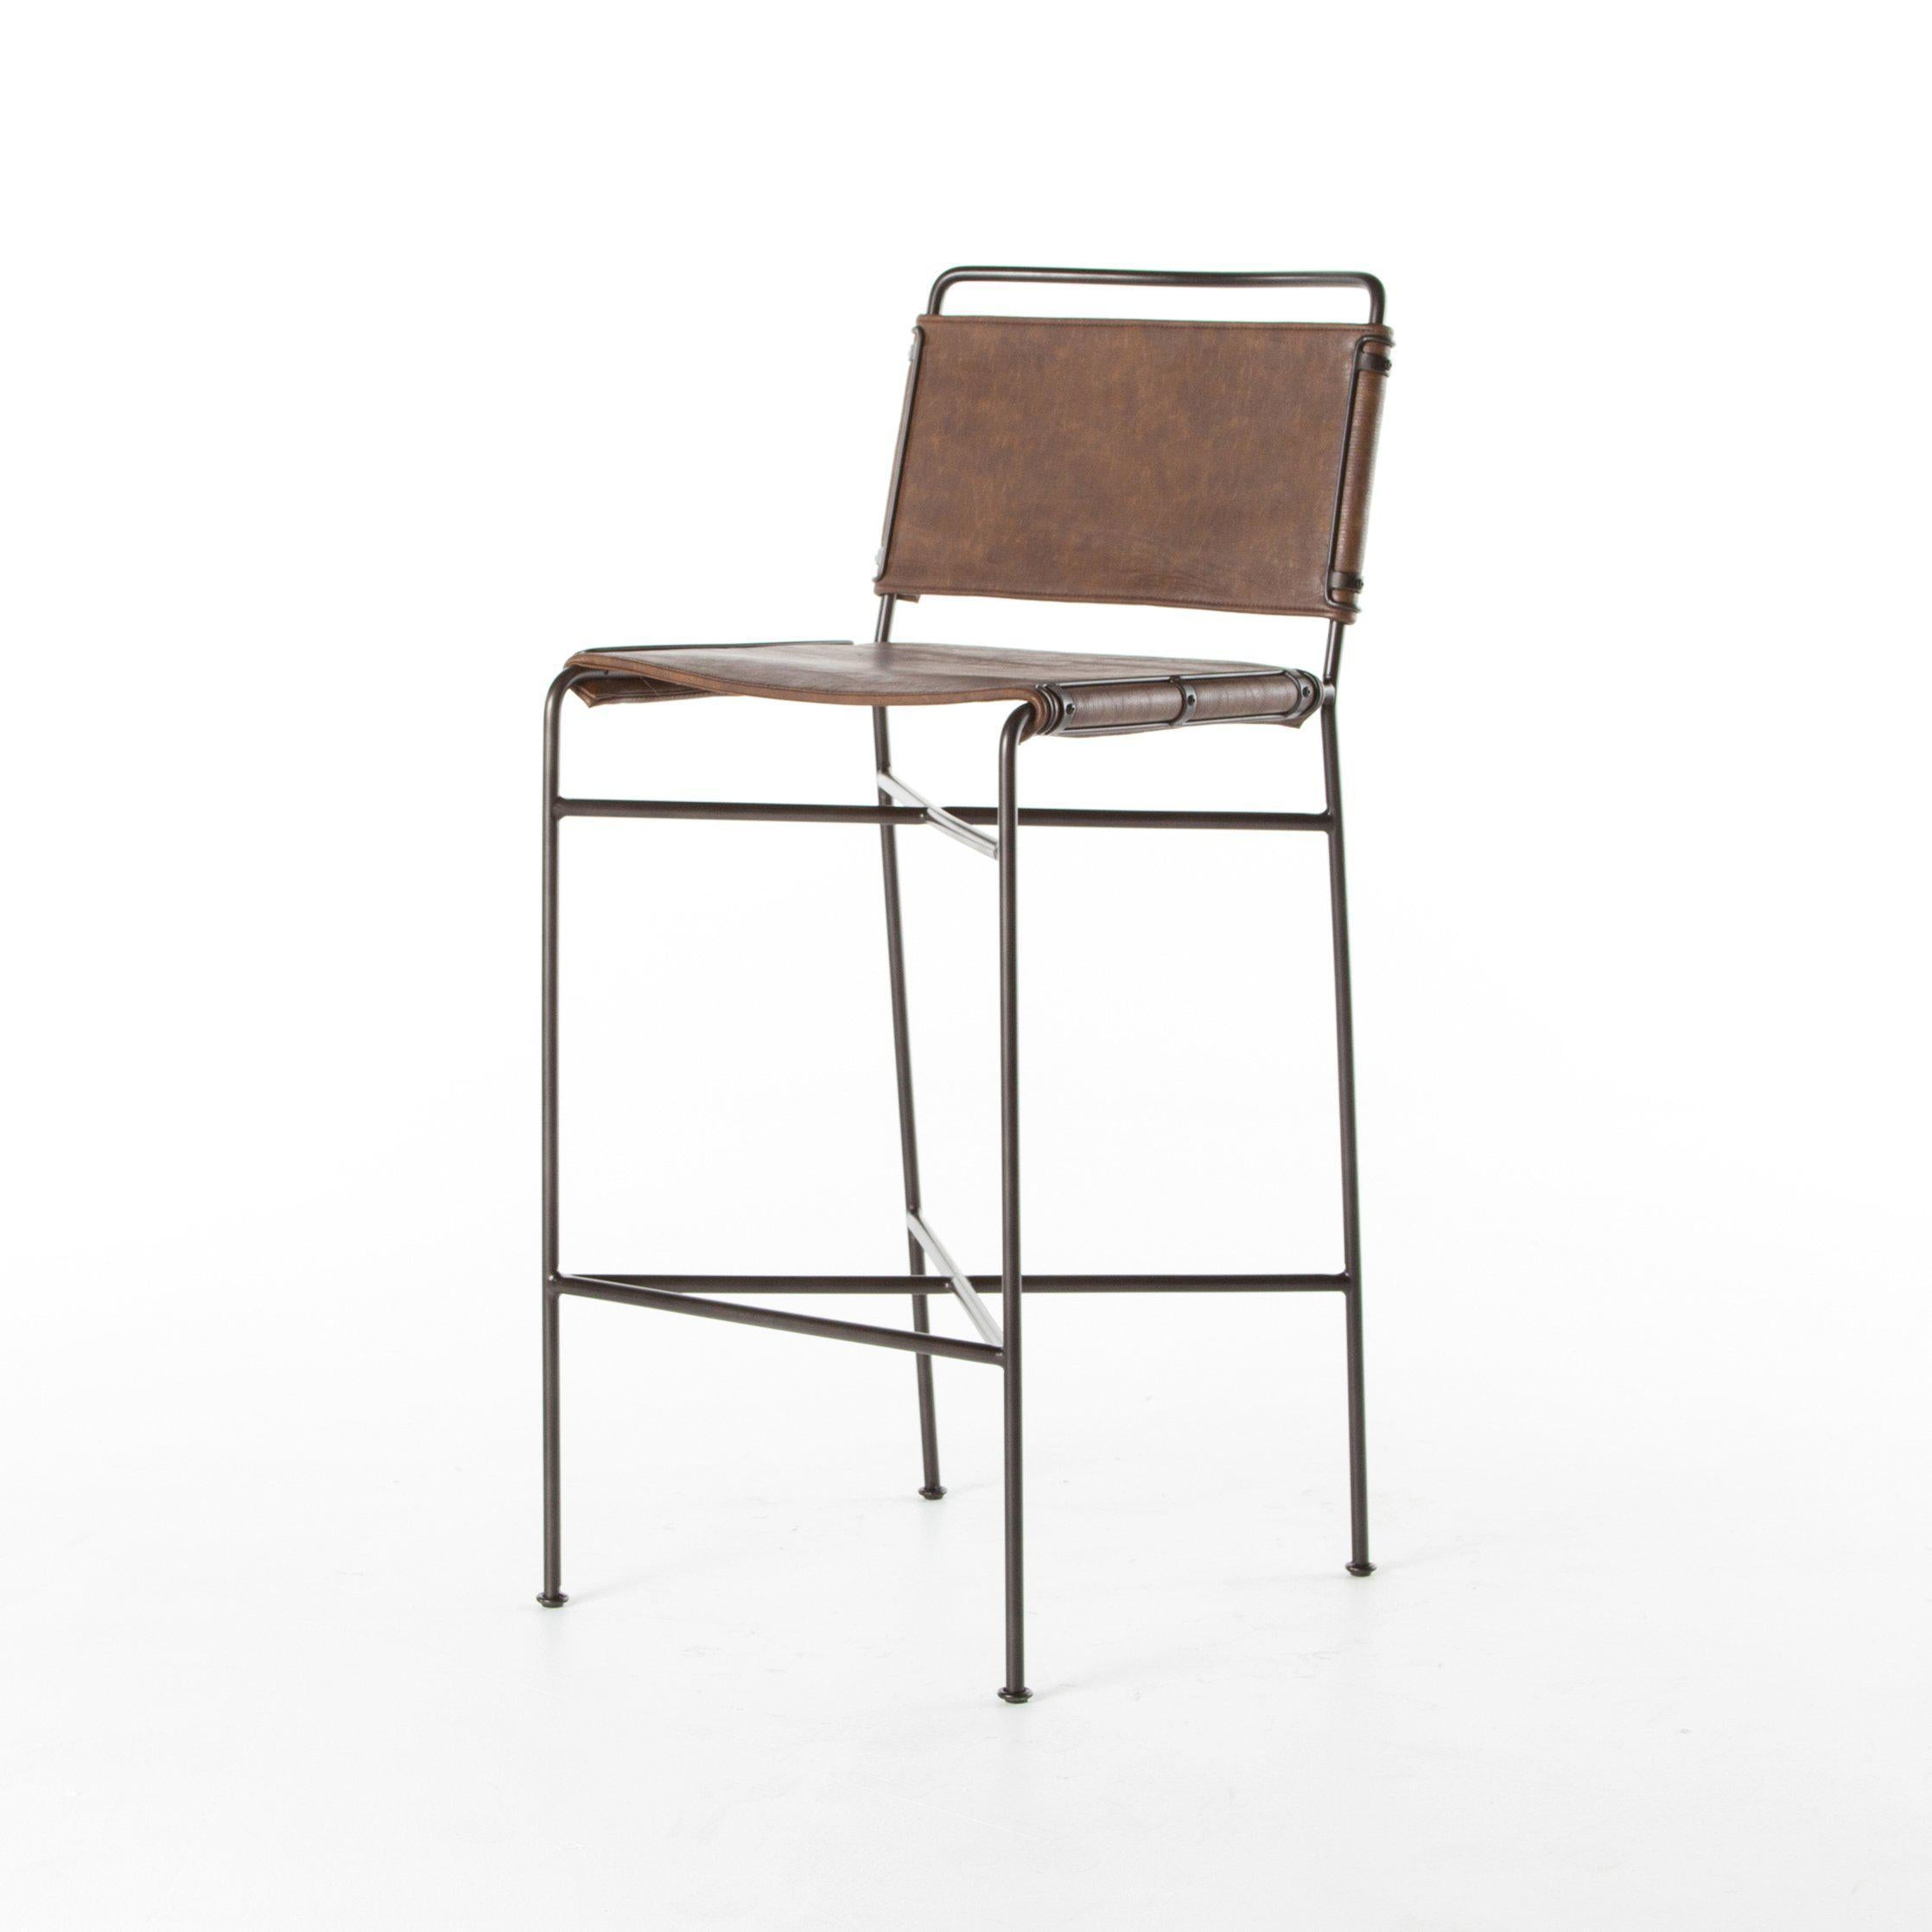 Wharton Bar or Counter Stool (Distressed Brown) - Irondale | Stool | parker-gwen